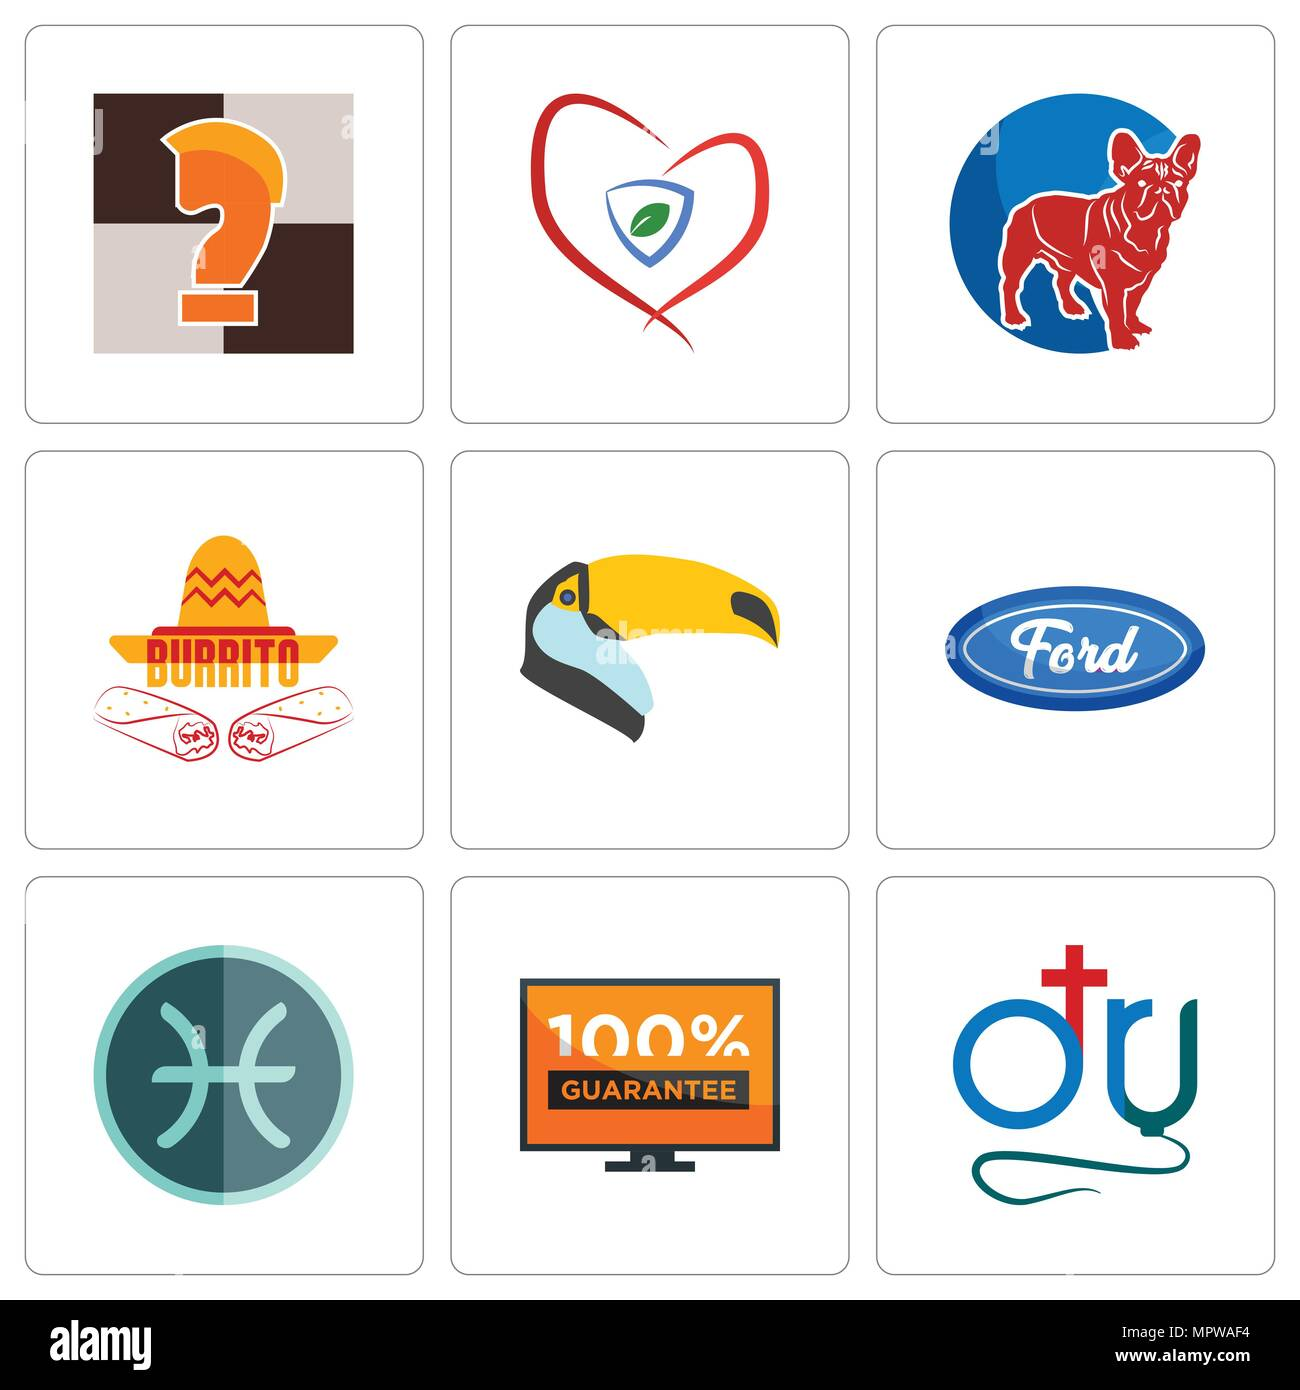 15190f1ed Set Of 9 simple editable icons such as dr., 100 guarantee, pisces, f,  toucan, burrito, french bulldog, insurance, chess knight, can be used for  mobile